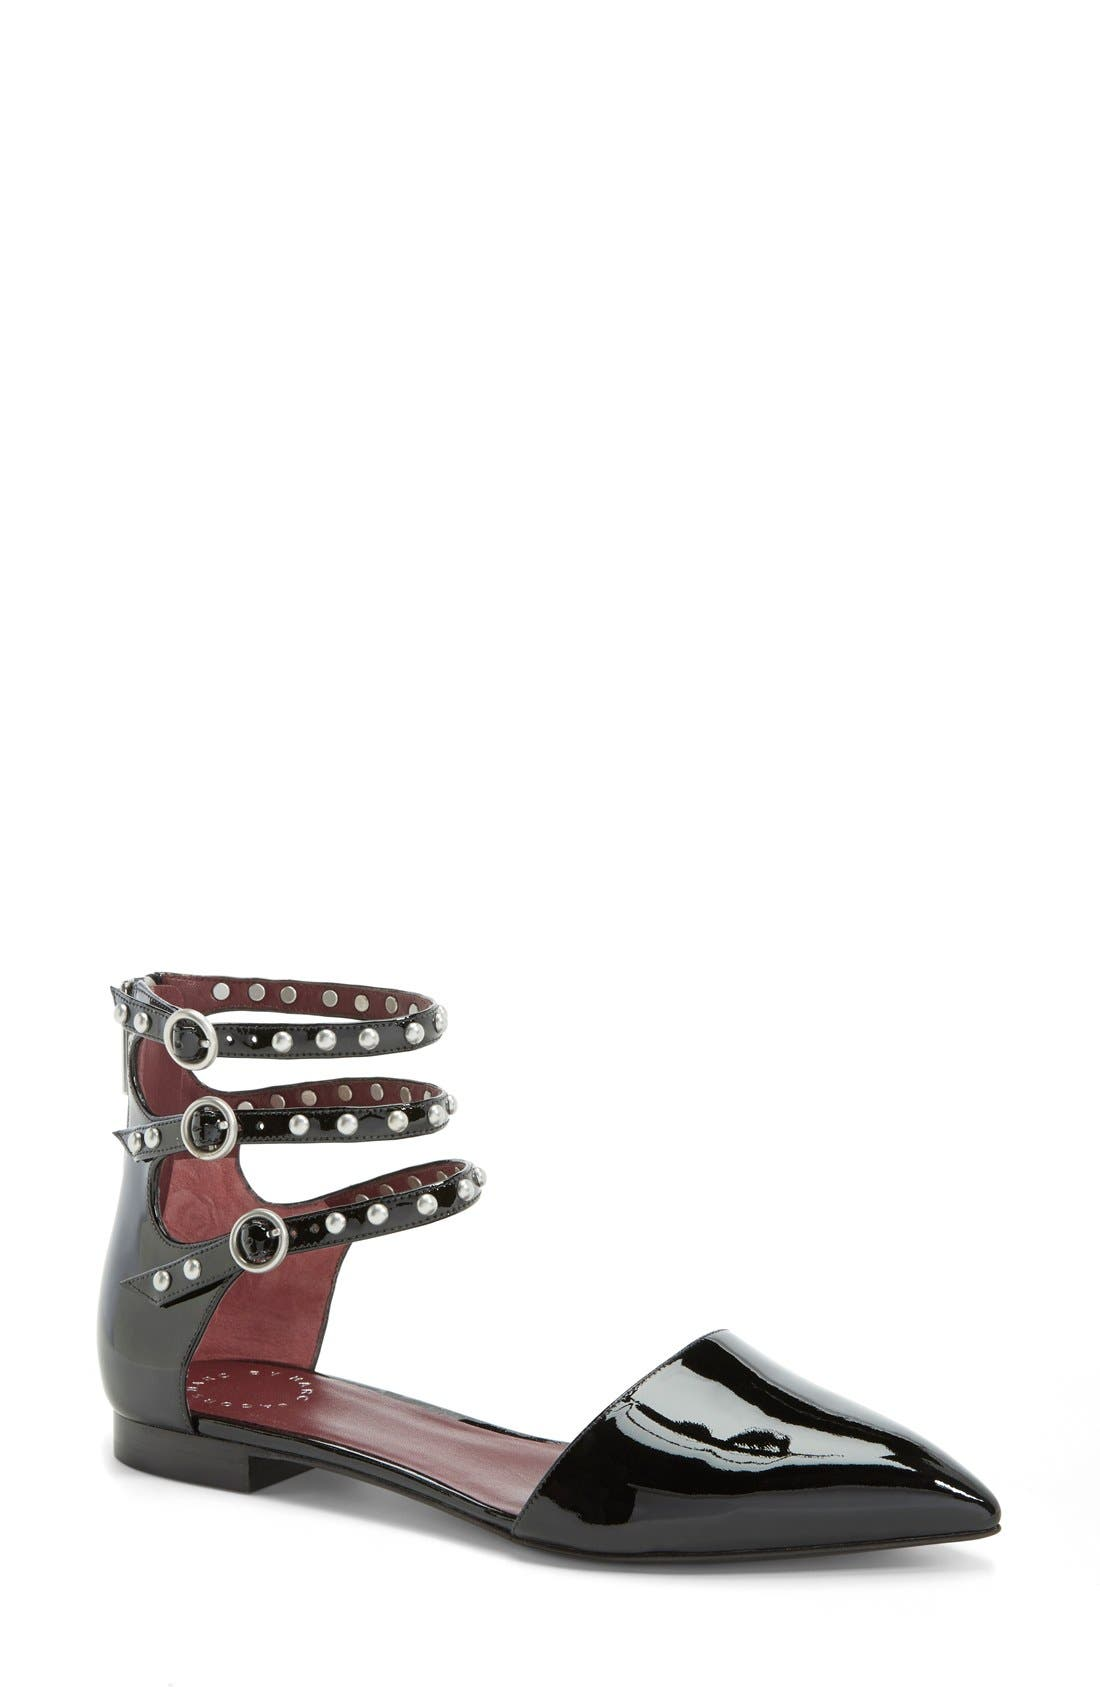 Main Image - MARC BY MARC JACOBS 'Minetta' Ankle Strap Flat (Women)